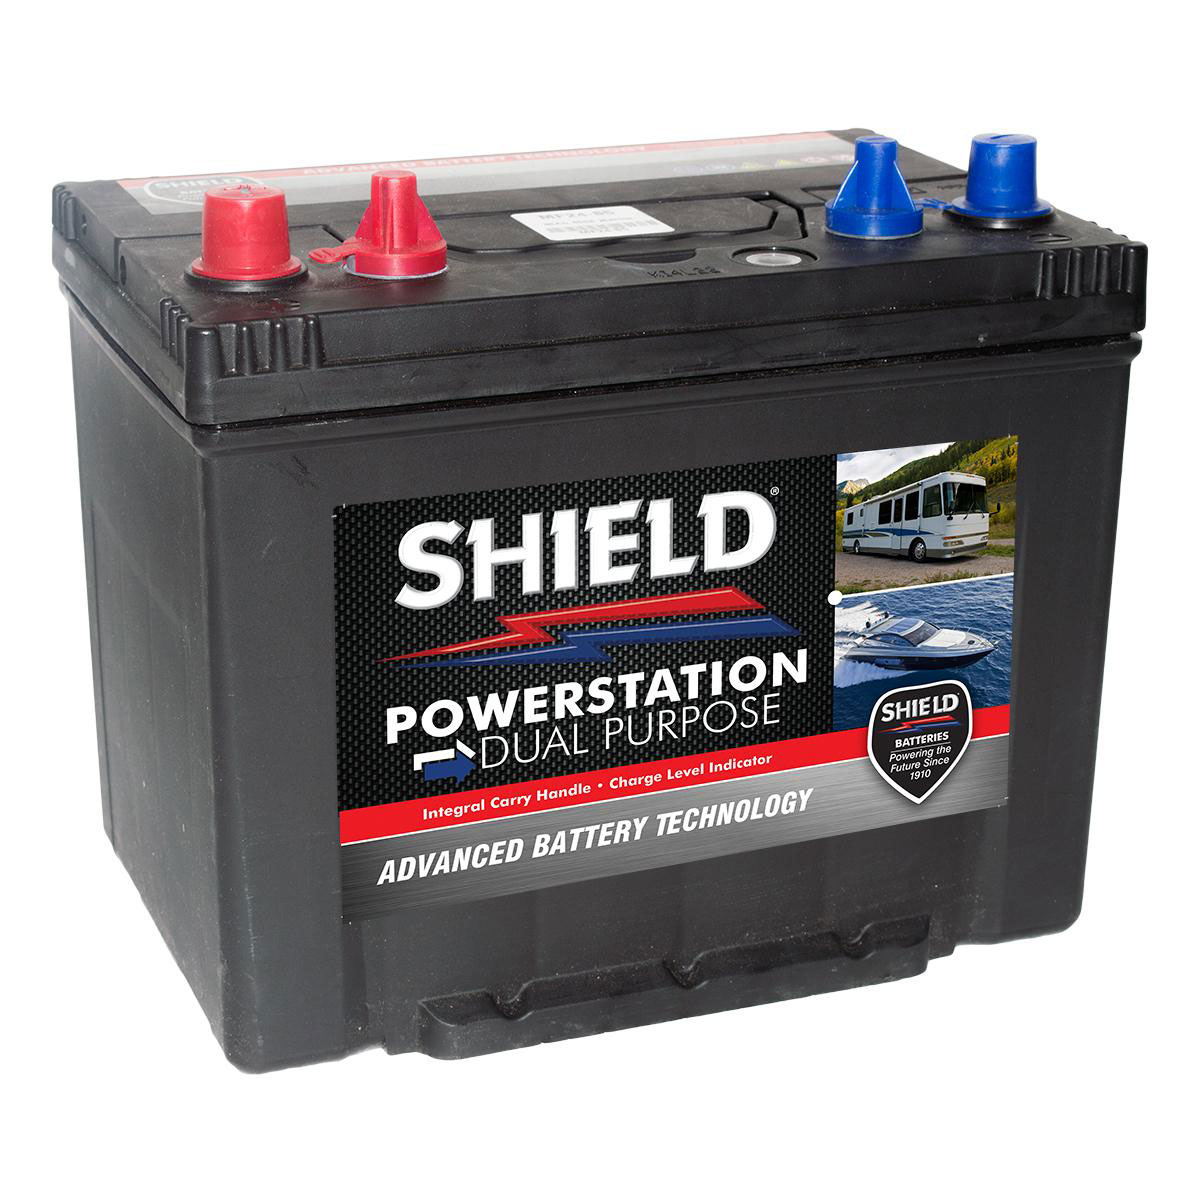 Shield-MF24-85-Battery.jpg